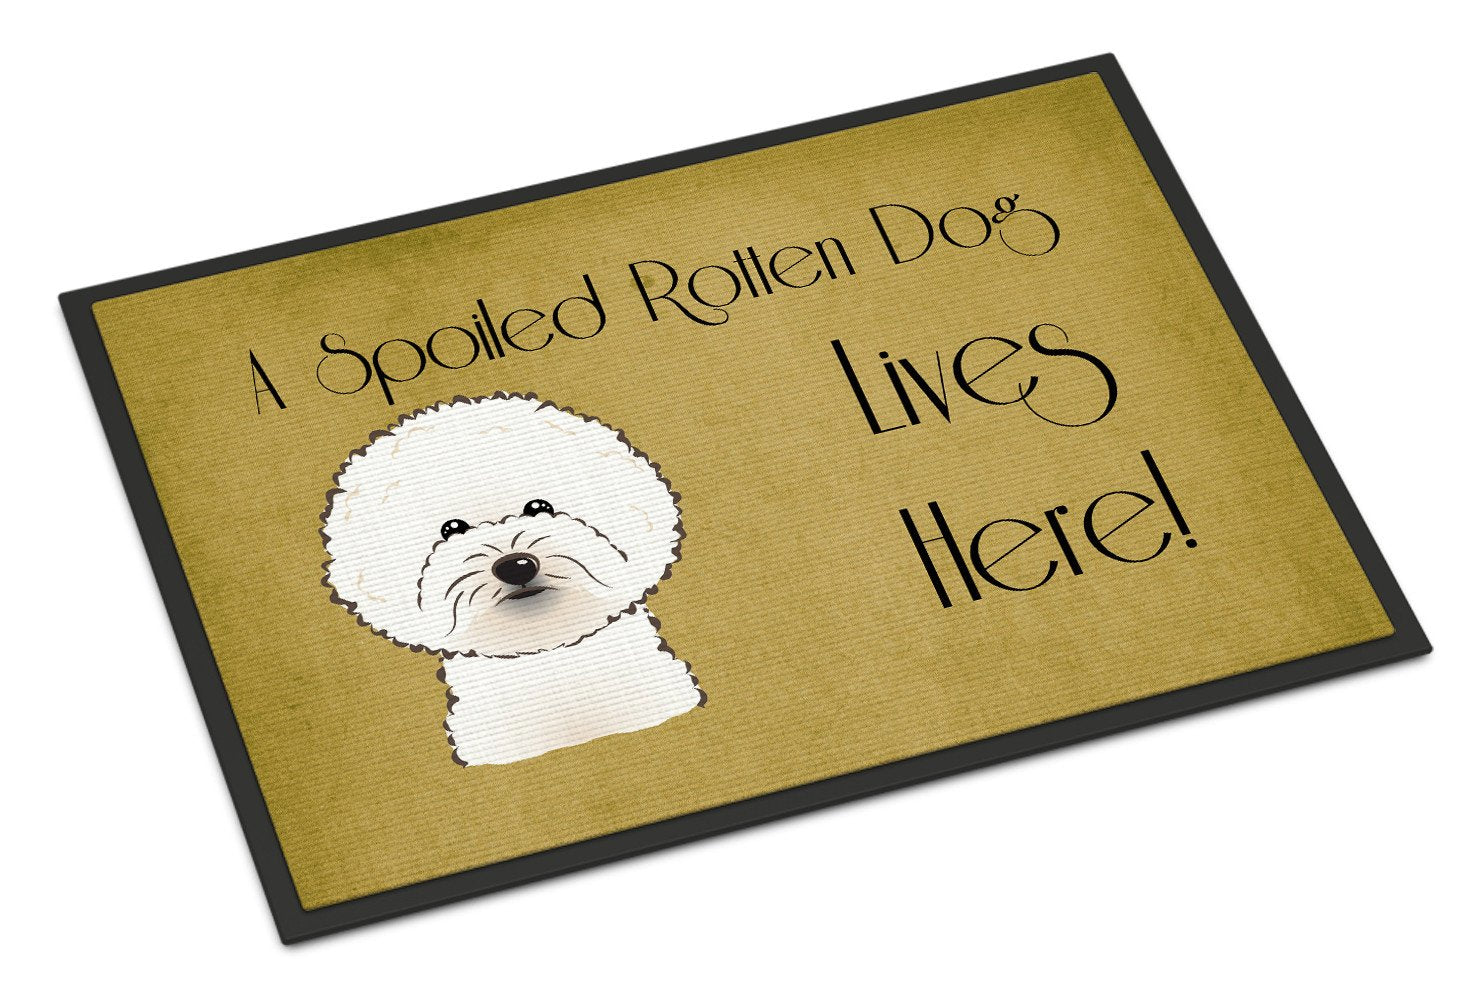 Bichon Frise Spoiled Dog Lives Here Indoor or Outdoor Mat 18x27 BB1465MAT - the-store.com